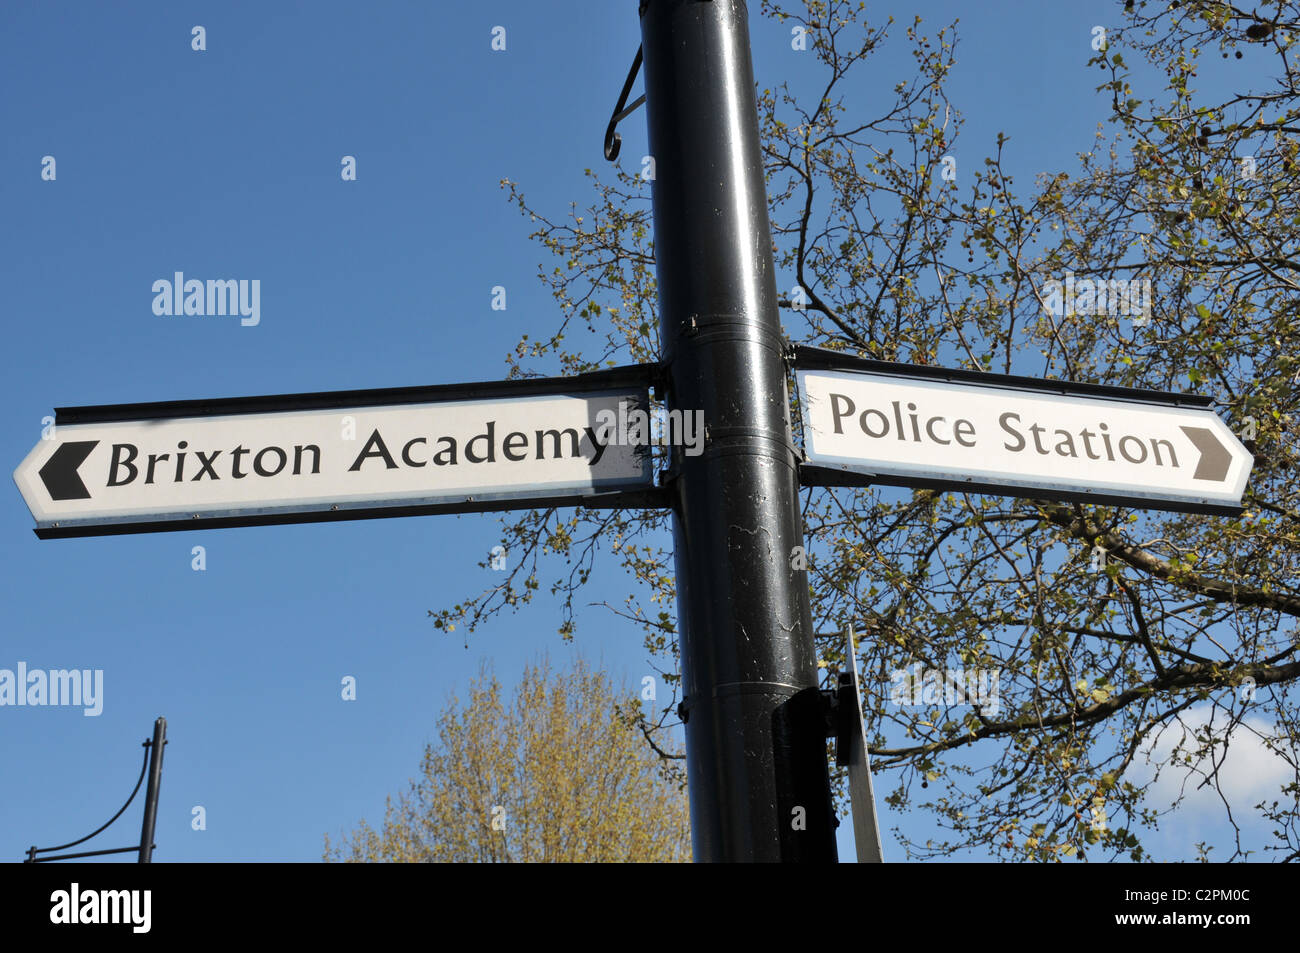 Brixton Academy sign Police Station Stock Photo